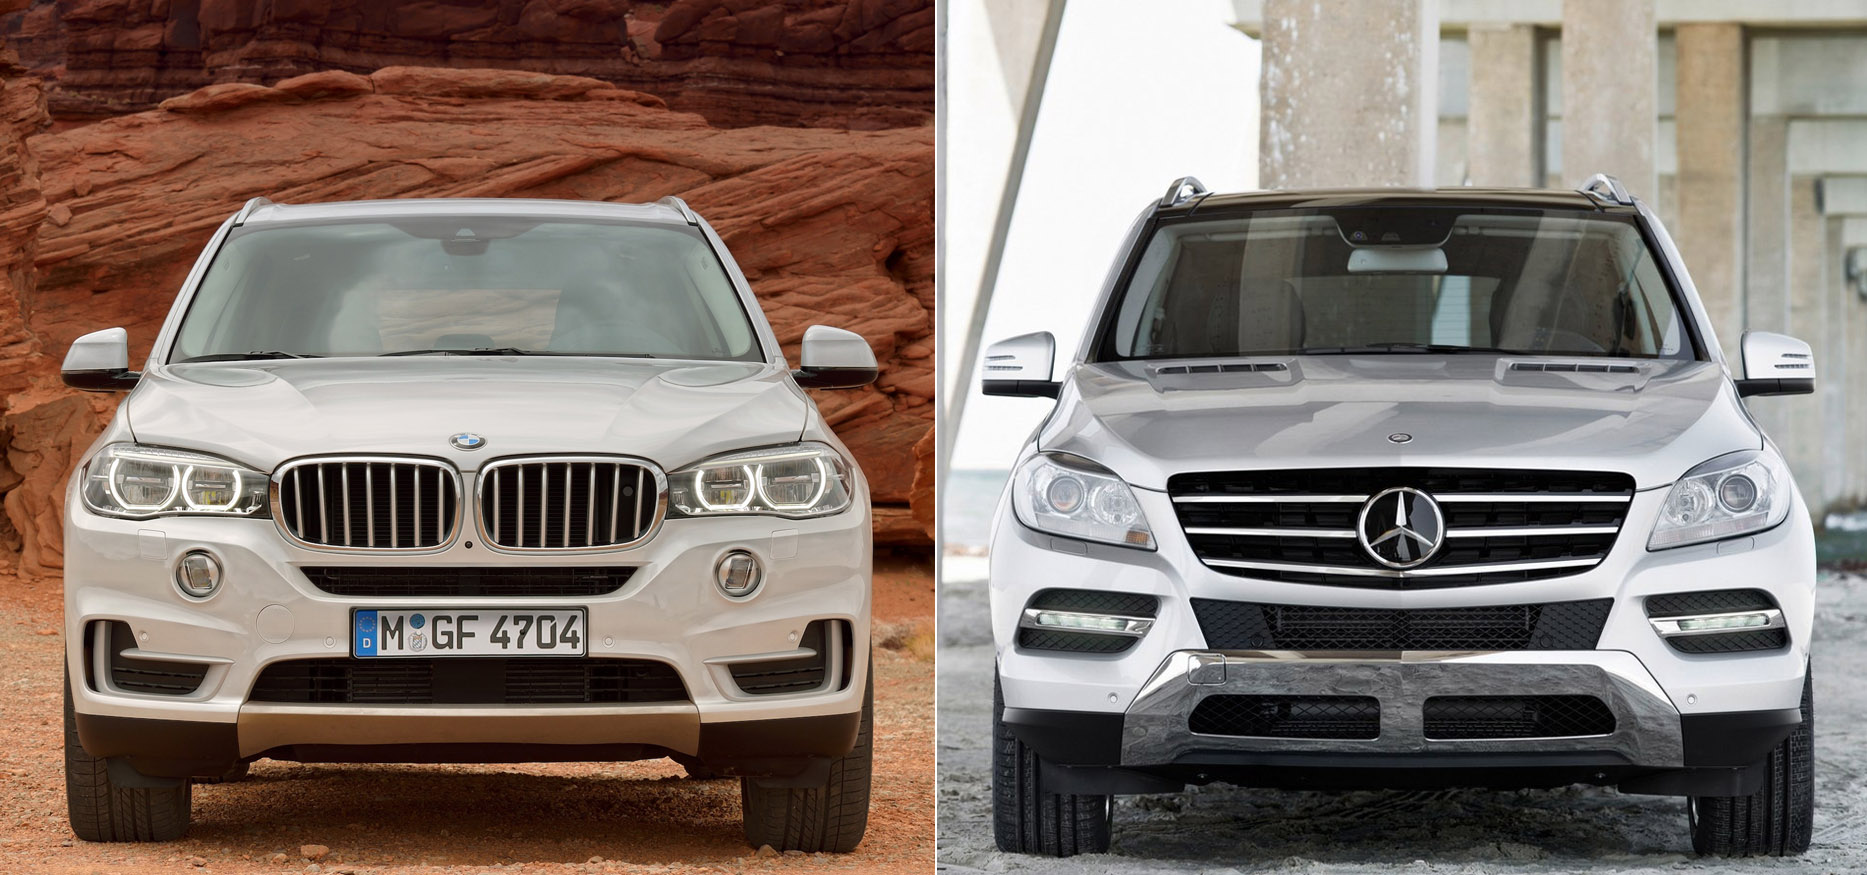 2014 Bmw X5 F15 Vs Mercedes Ml Compared